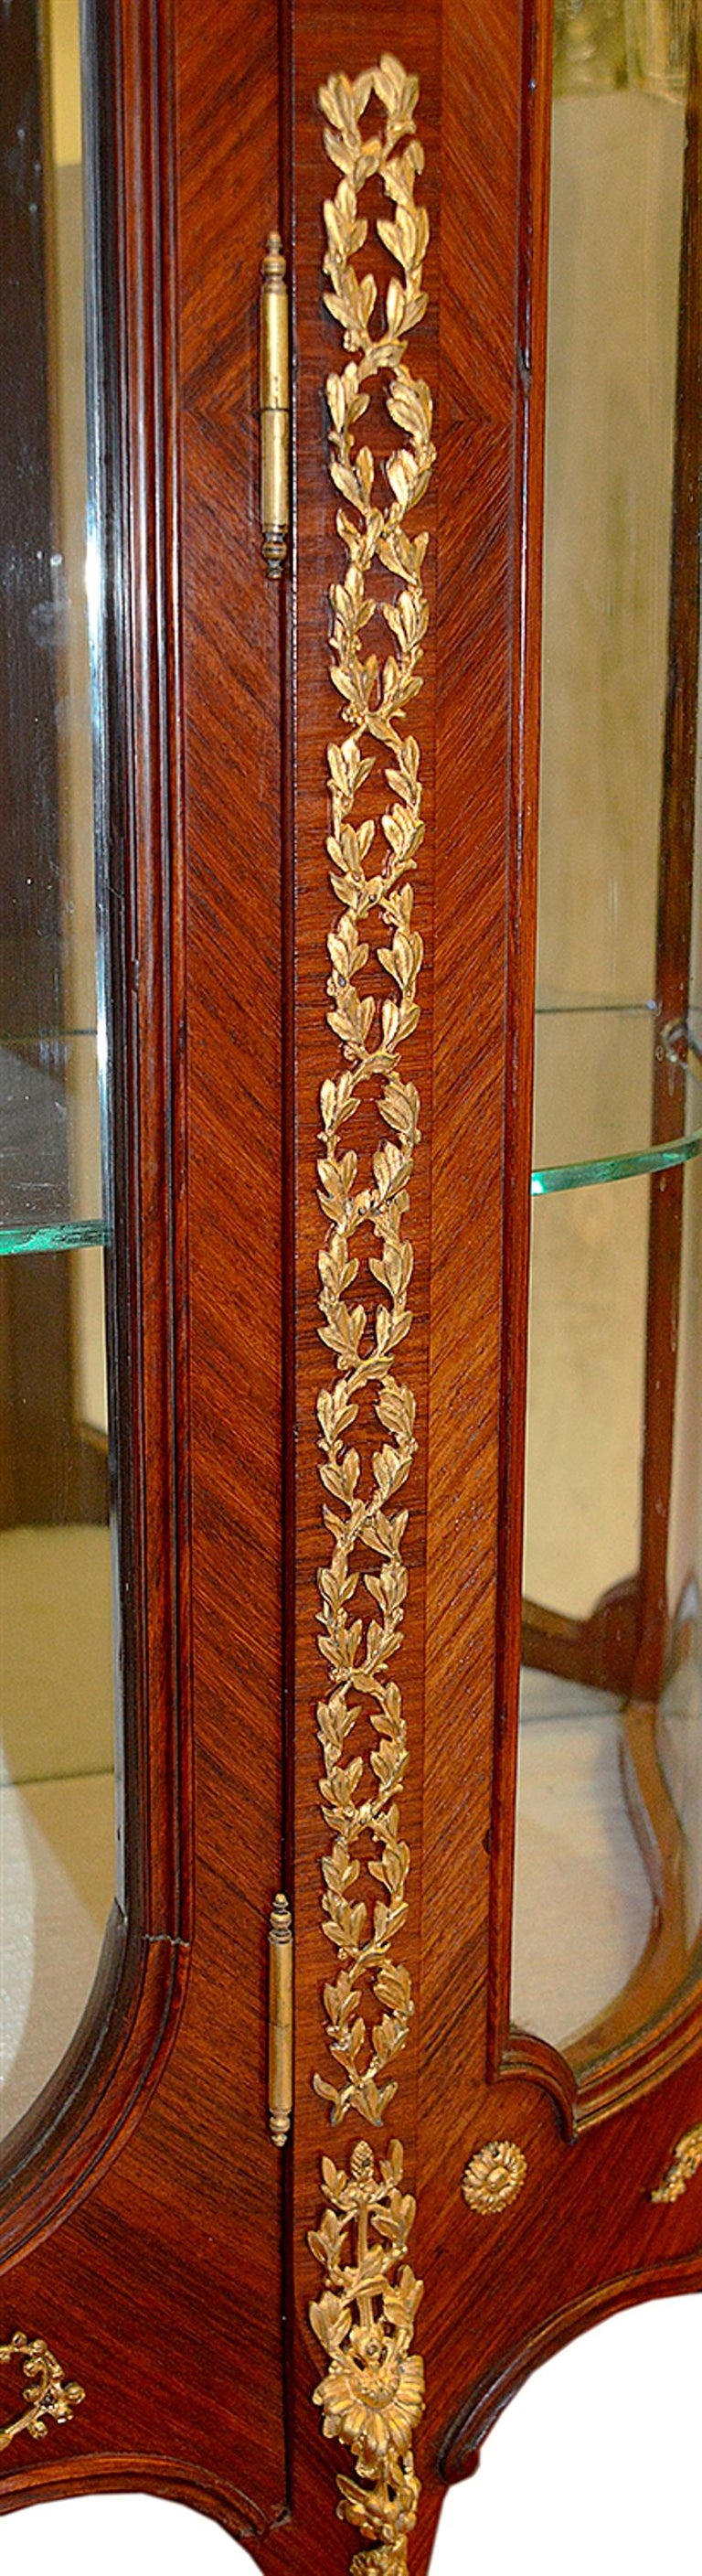 Late 19th Century French Vitrine by Francoise Linke For Sale 1